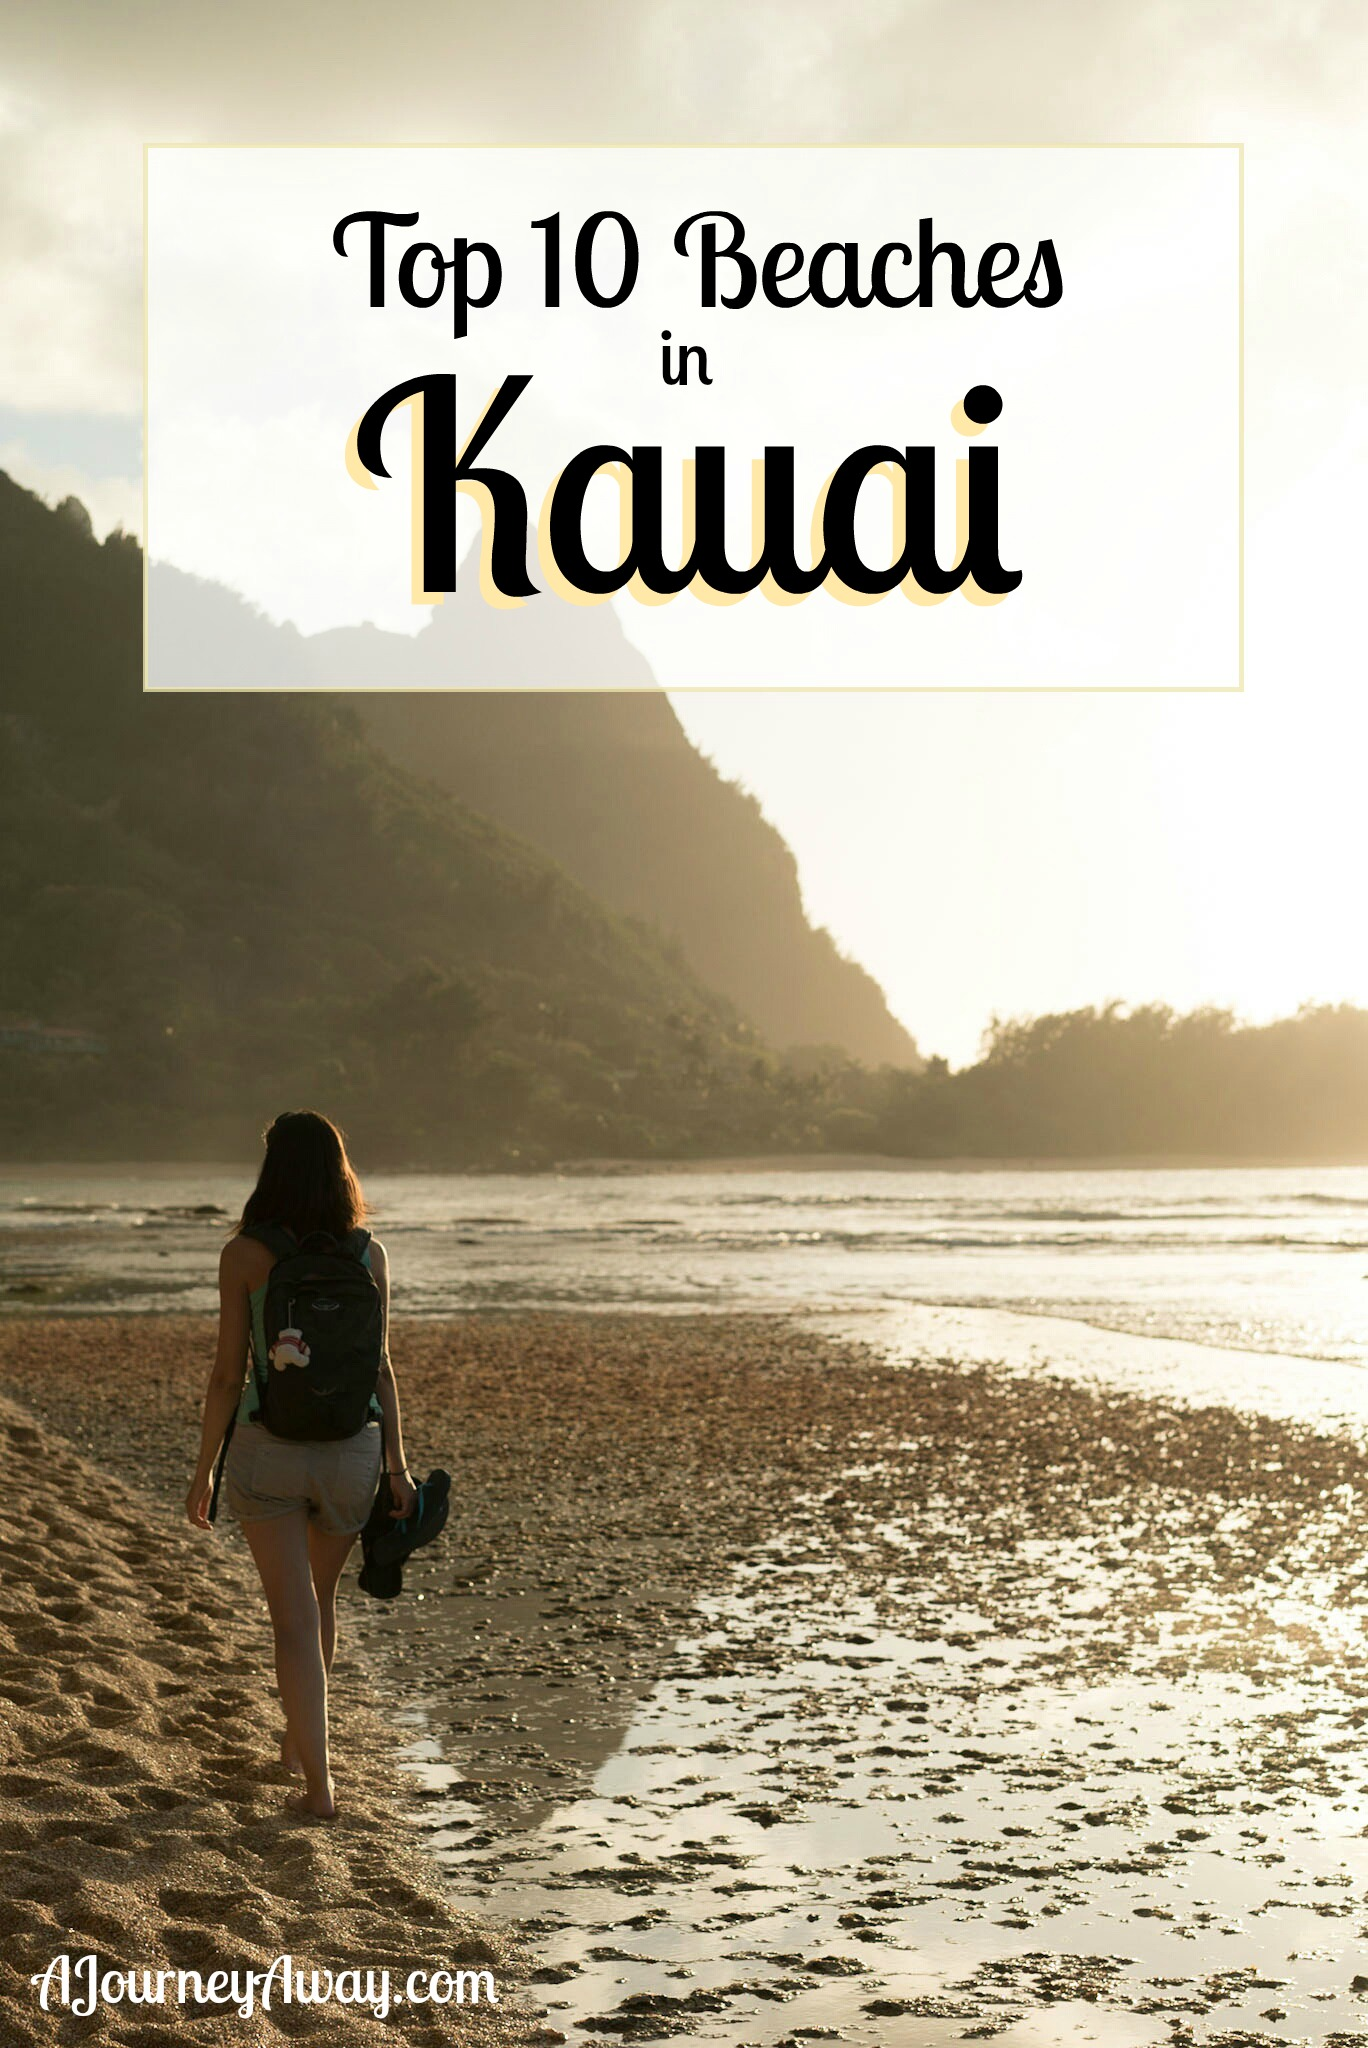 Best beaches in Kauai, Hawaii - A Journey Away travel blog